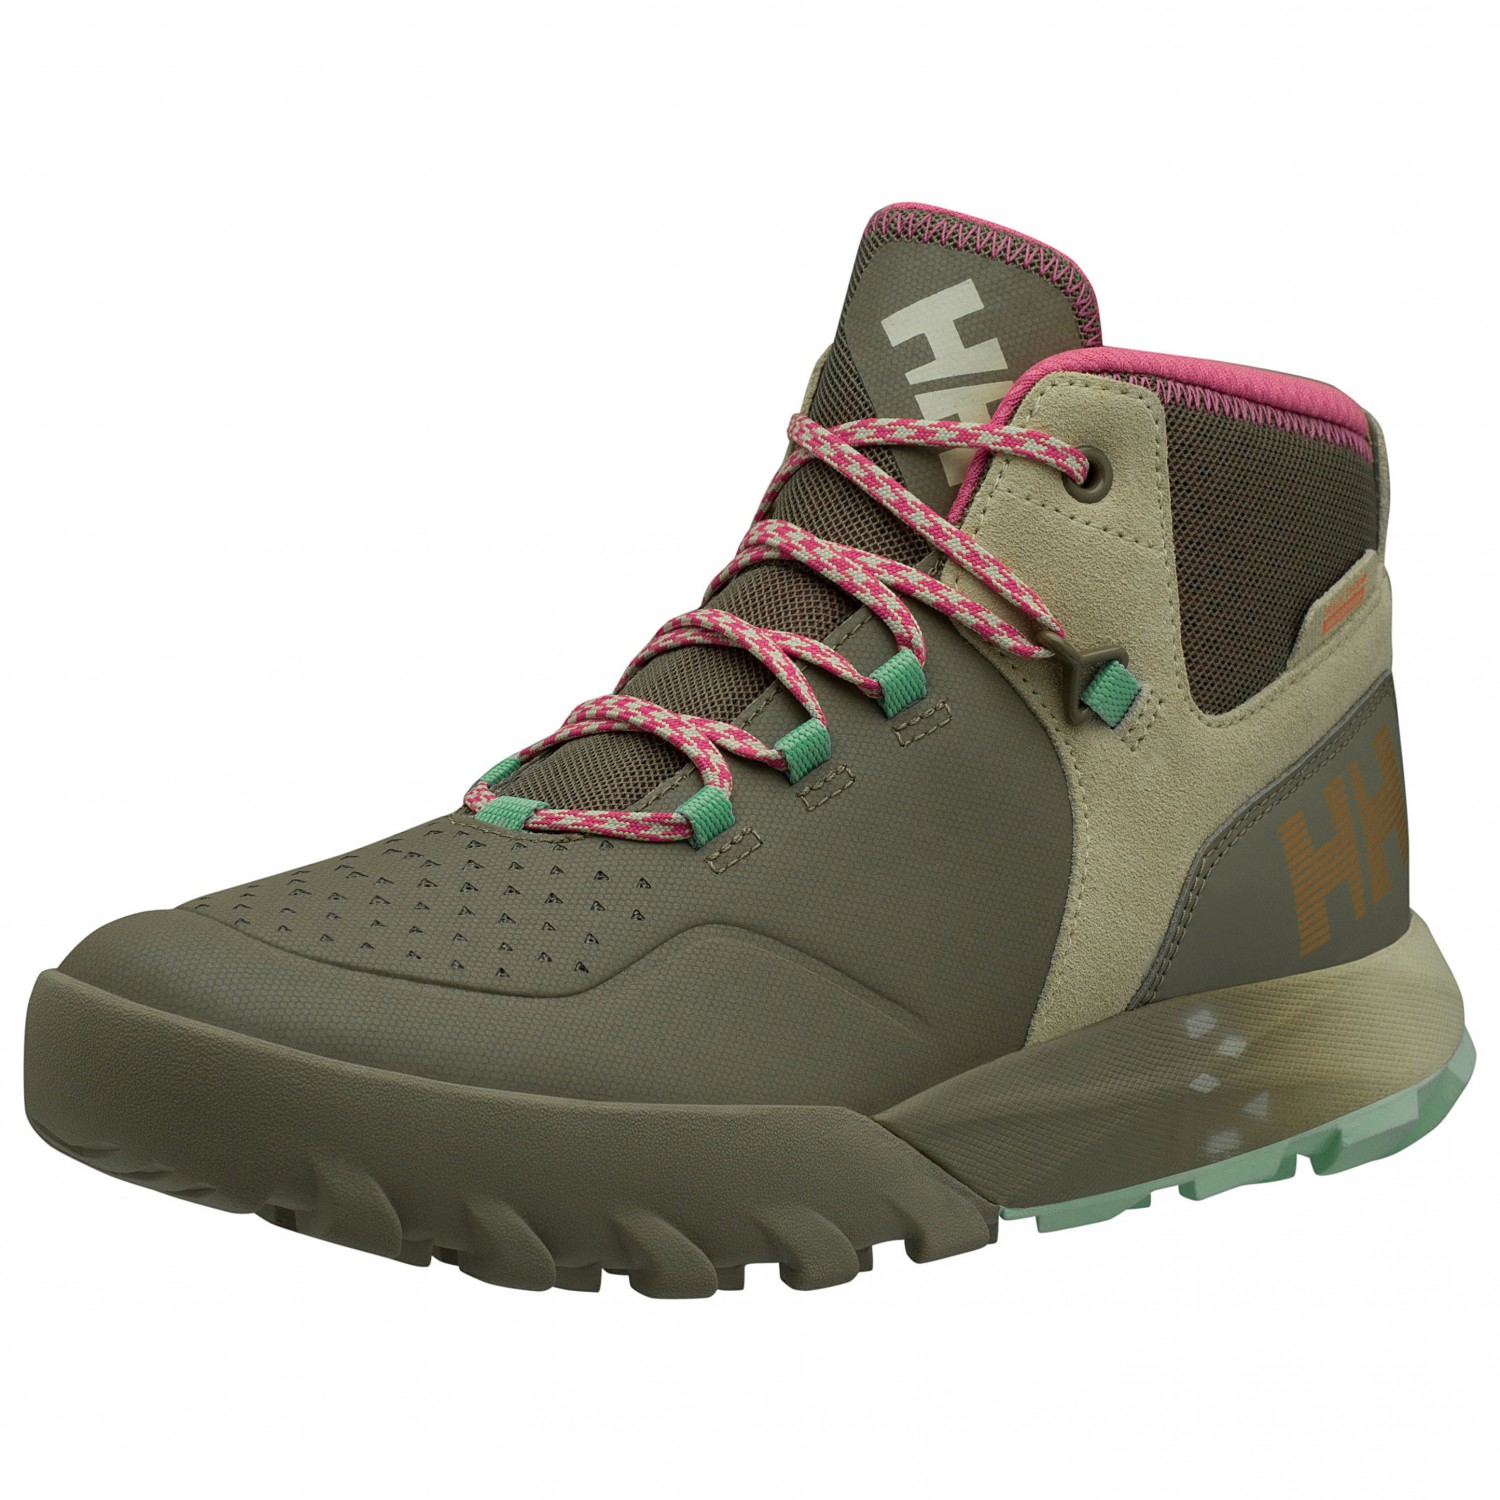 quality design 19cdf d968c Helly Hansen - Women's Loke Rambler HT - Walking boots - Fallen Rock /  Castle Wall | 6,5 (US)